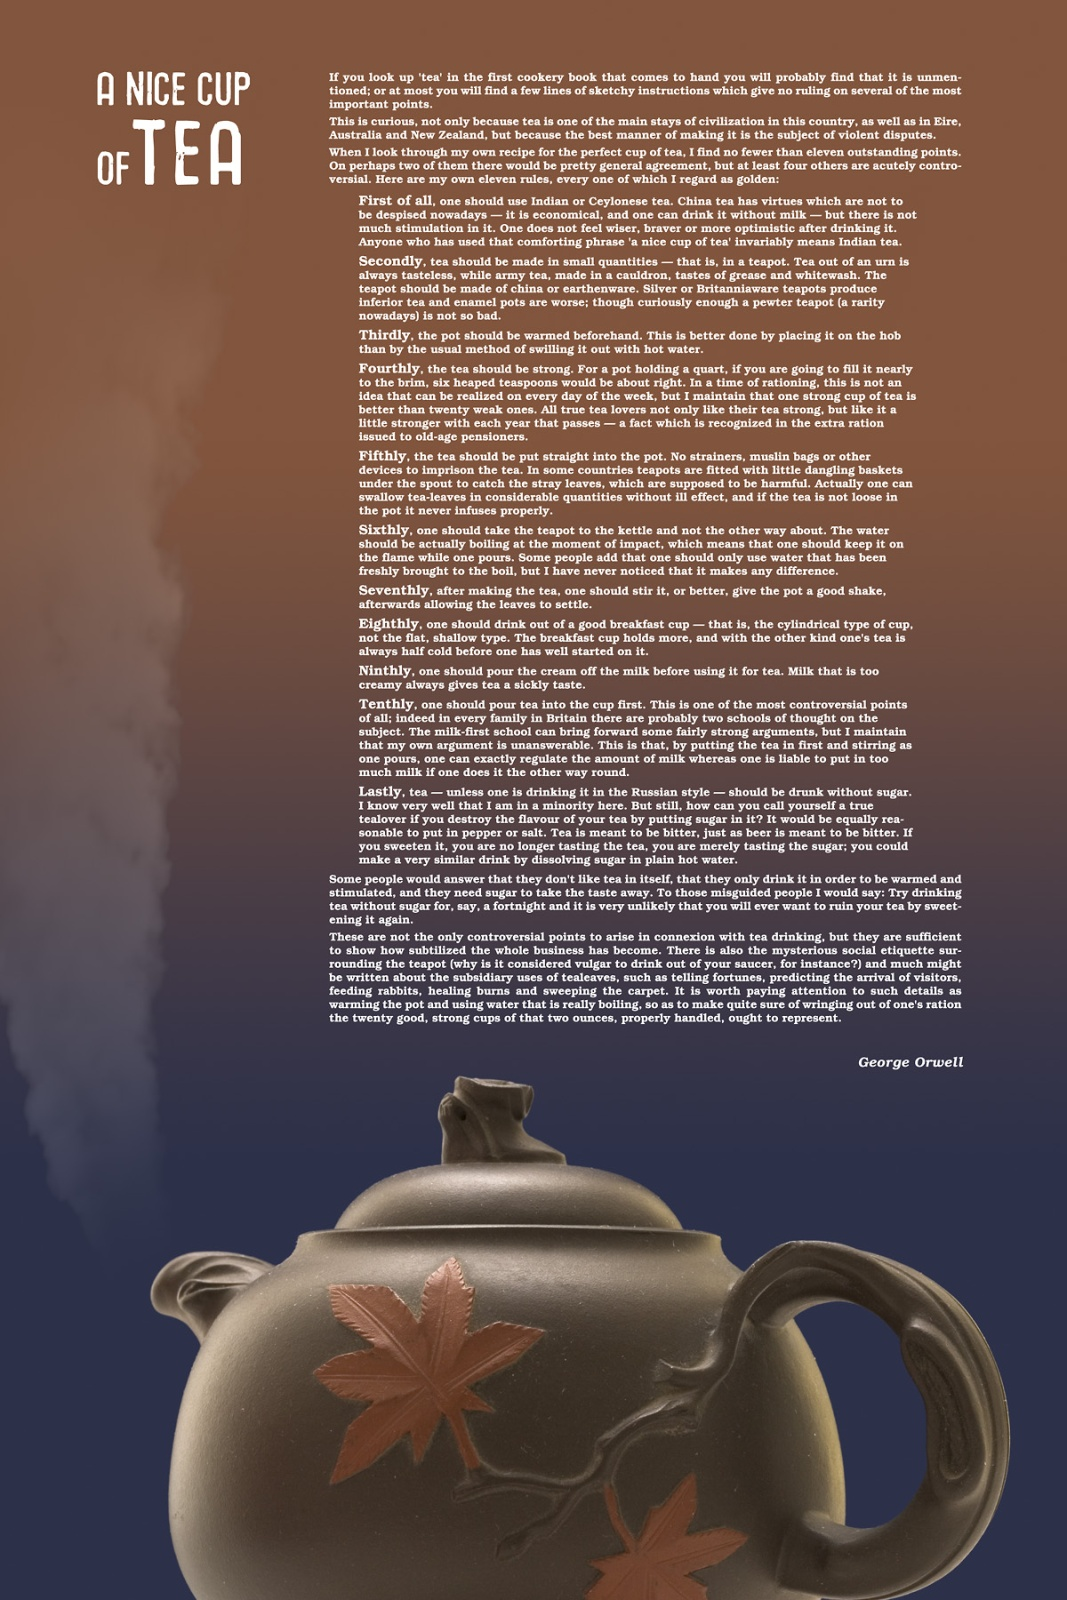 George orwell tea essay